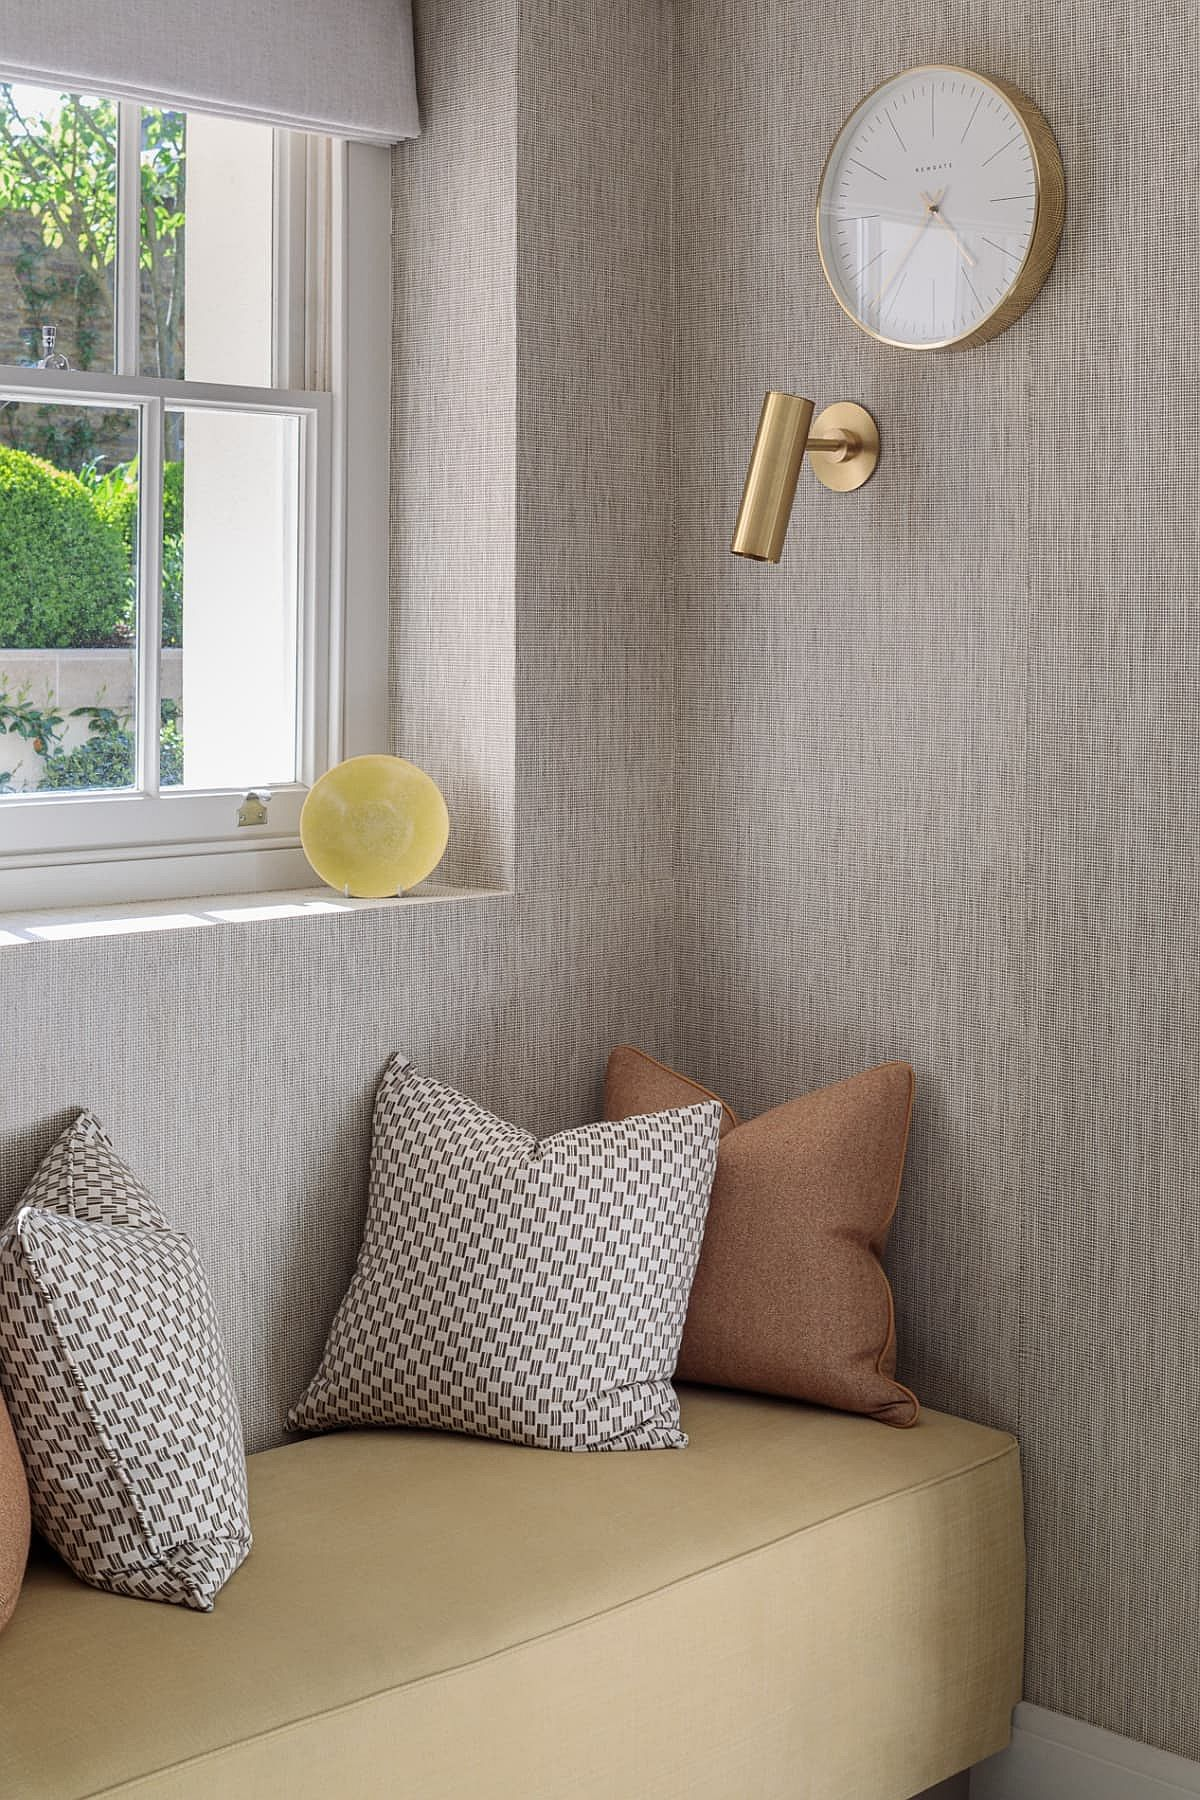 Comfy window seat with lighting that feels cozy